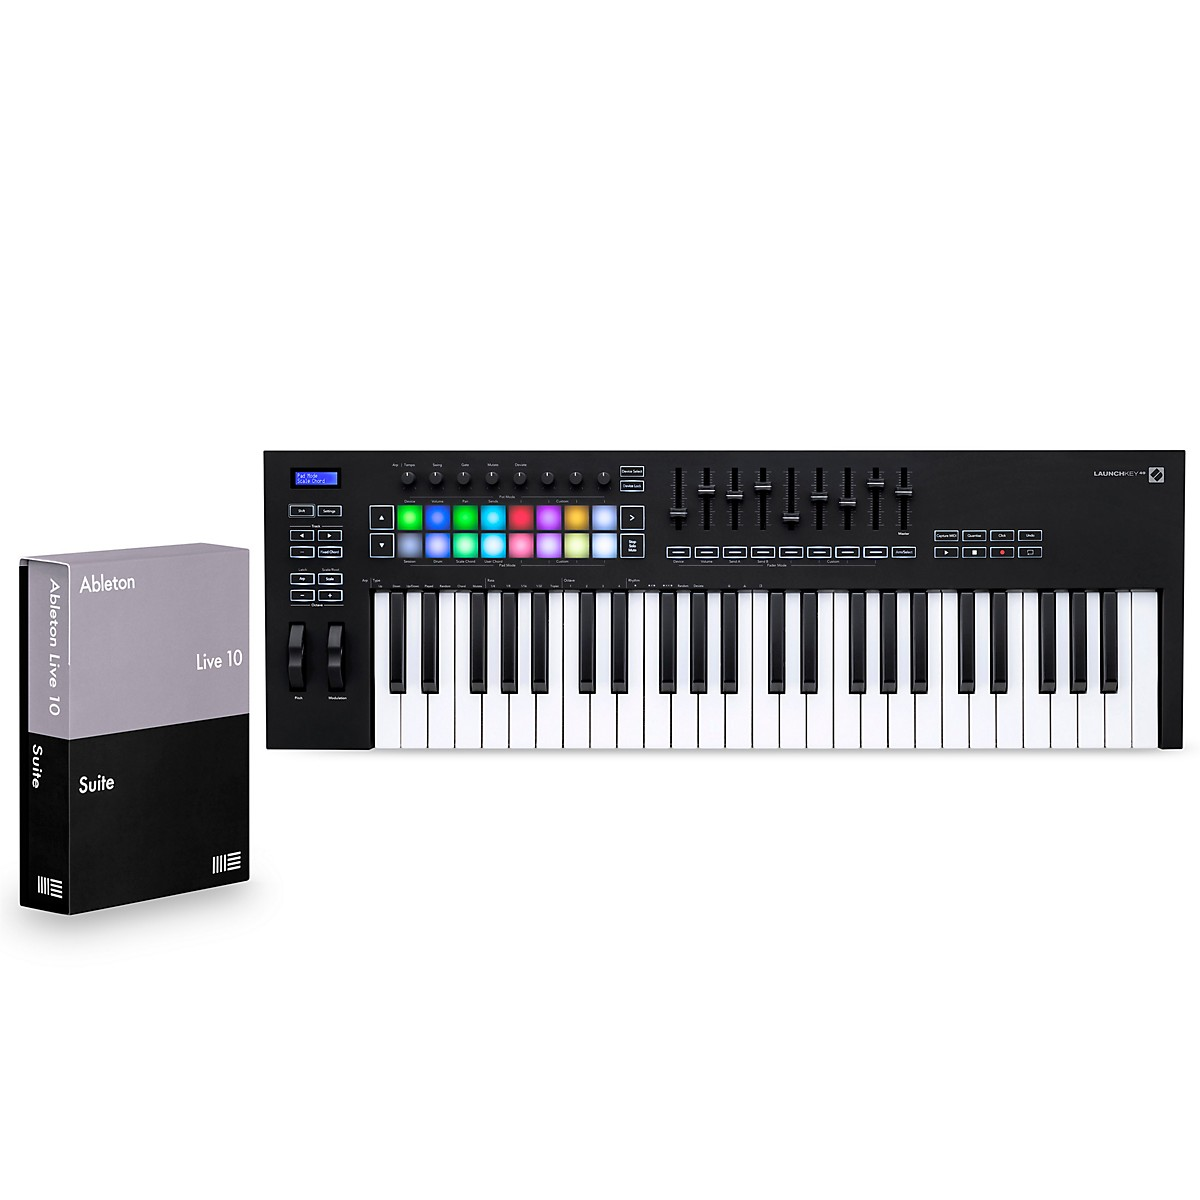 Novation Launchkey 49 [MK3] with Ableton Live 10 Suite